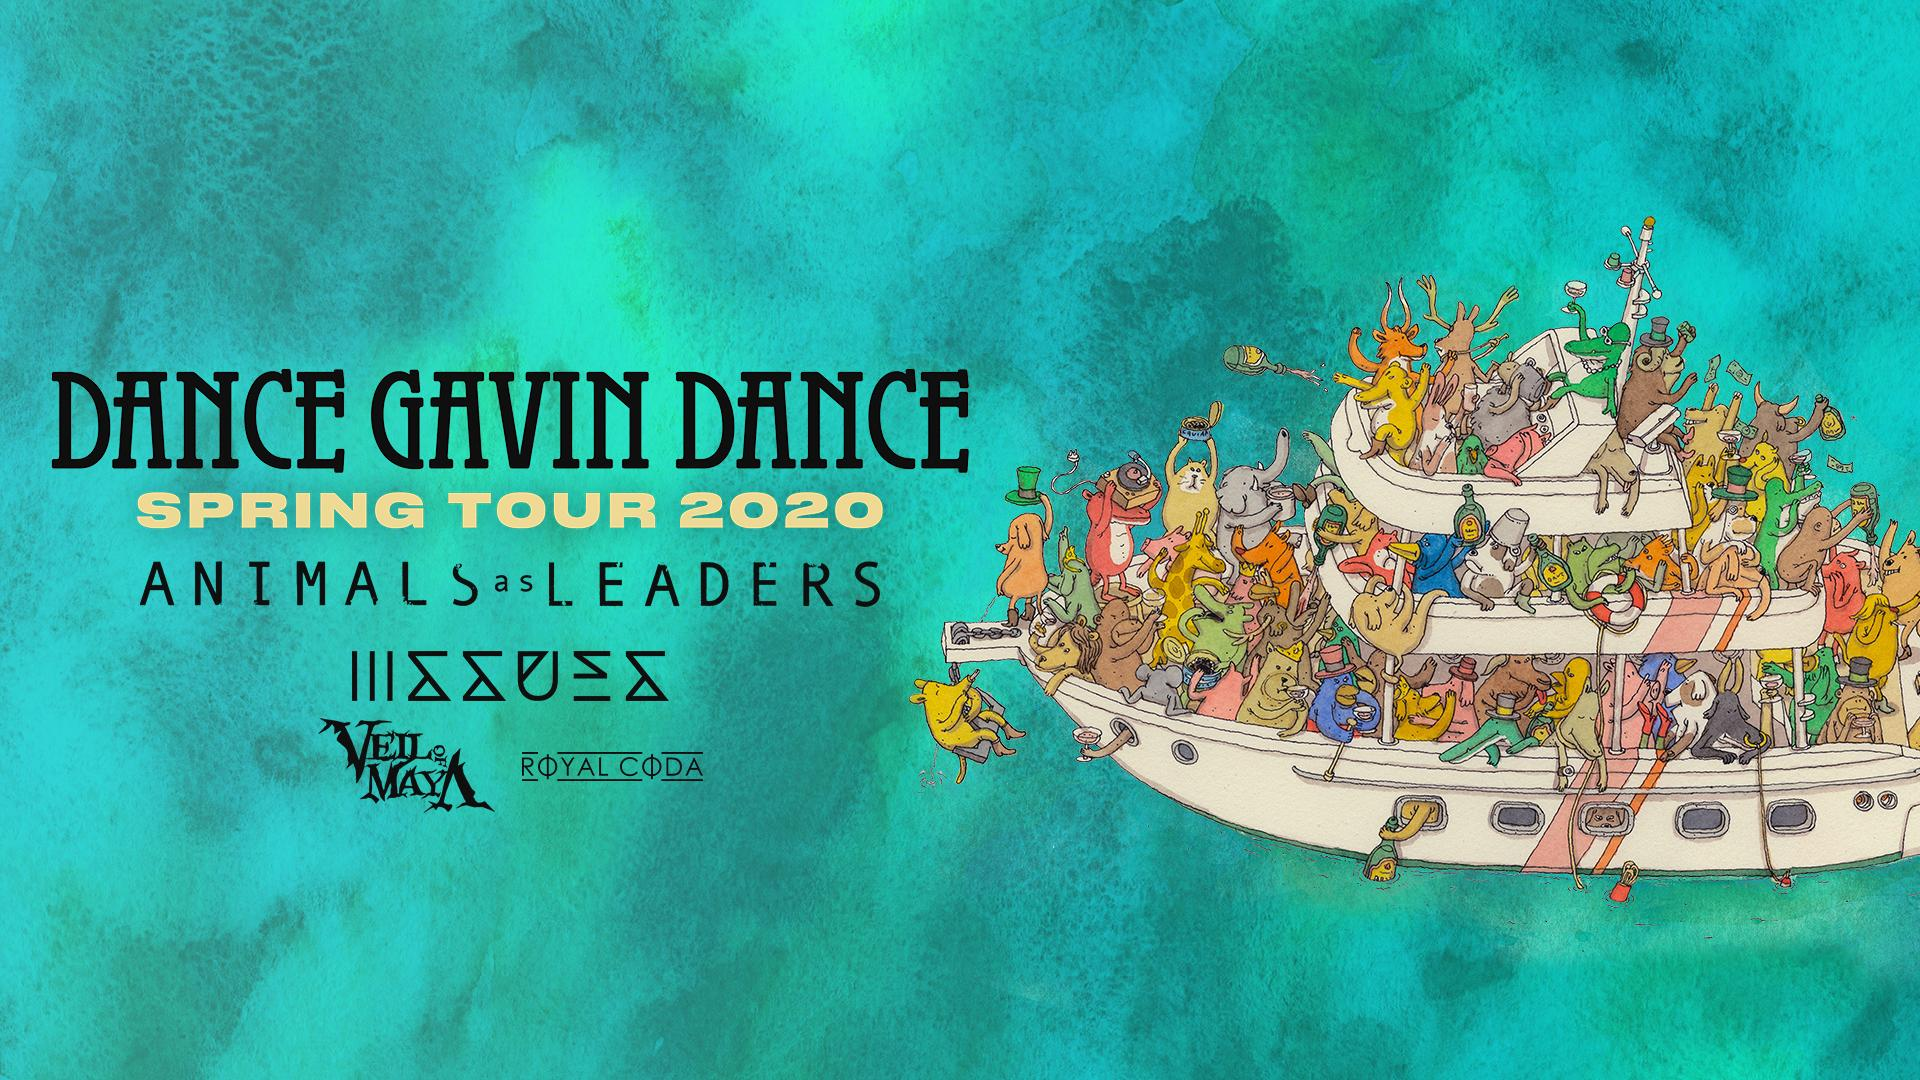 DANCE GAVIN DANCE - with Special Guest ISSUES